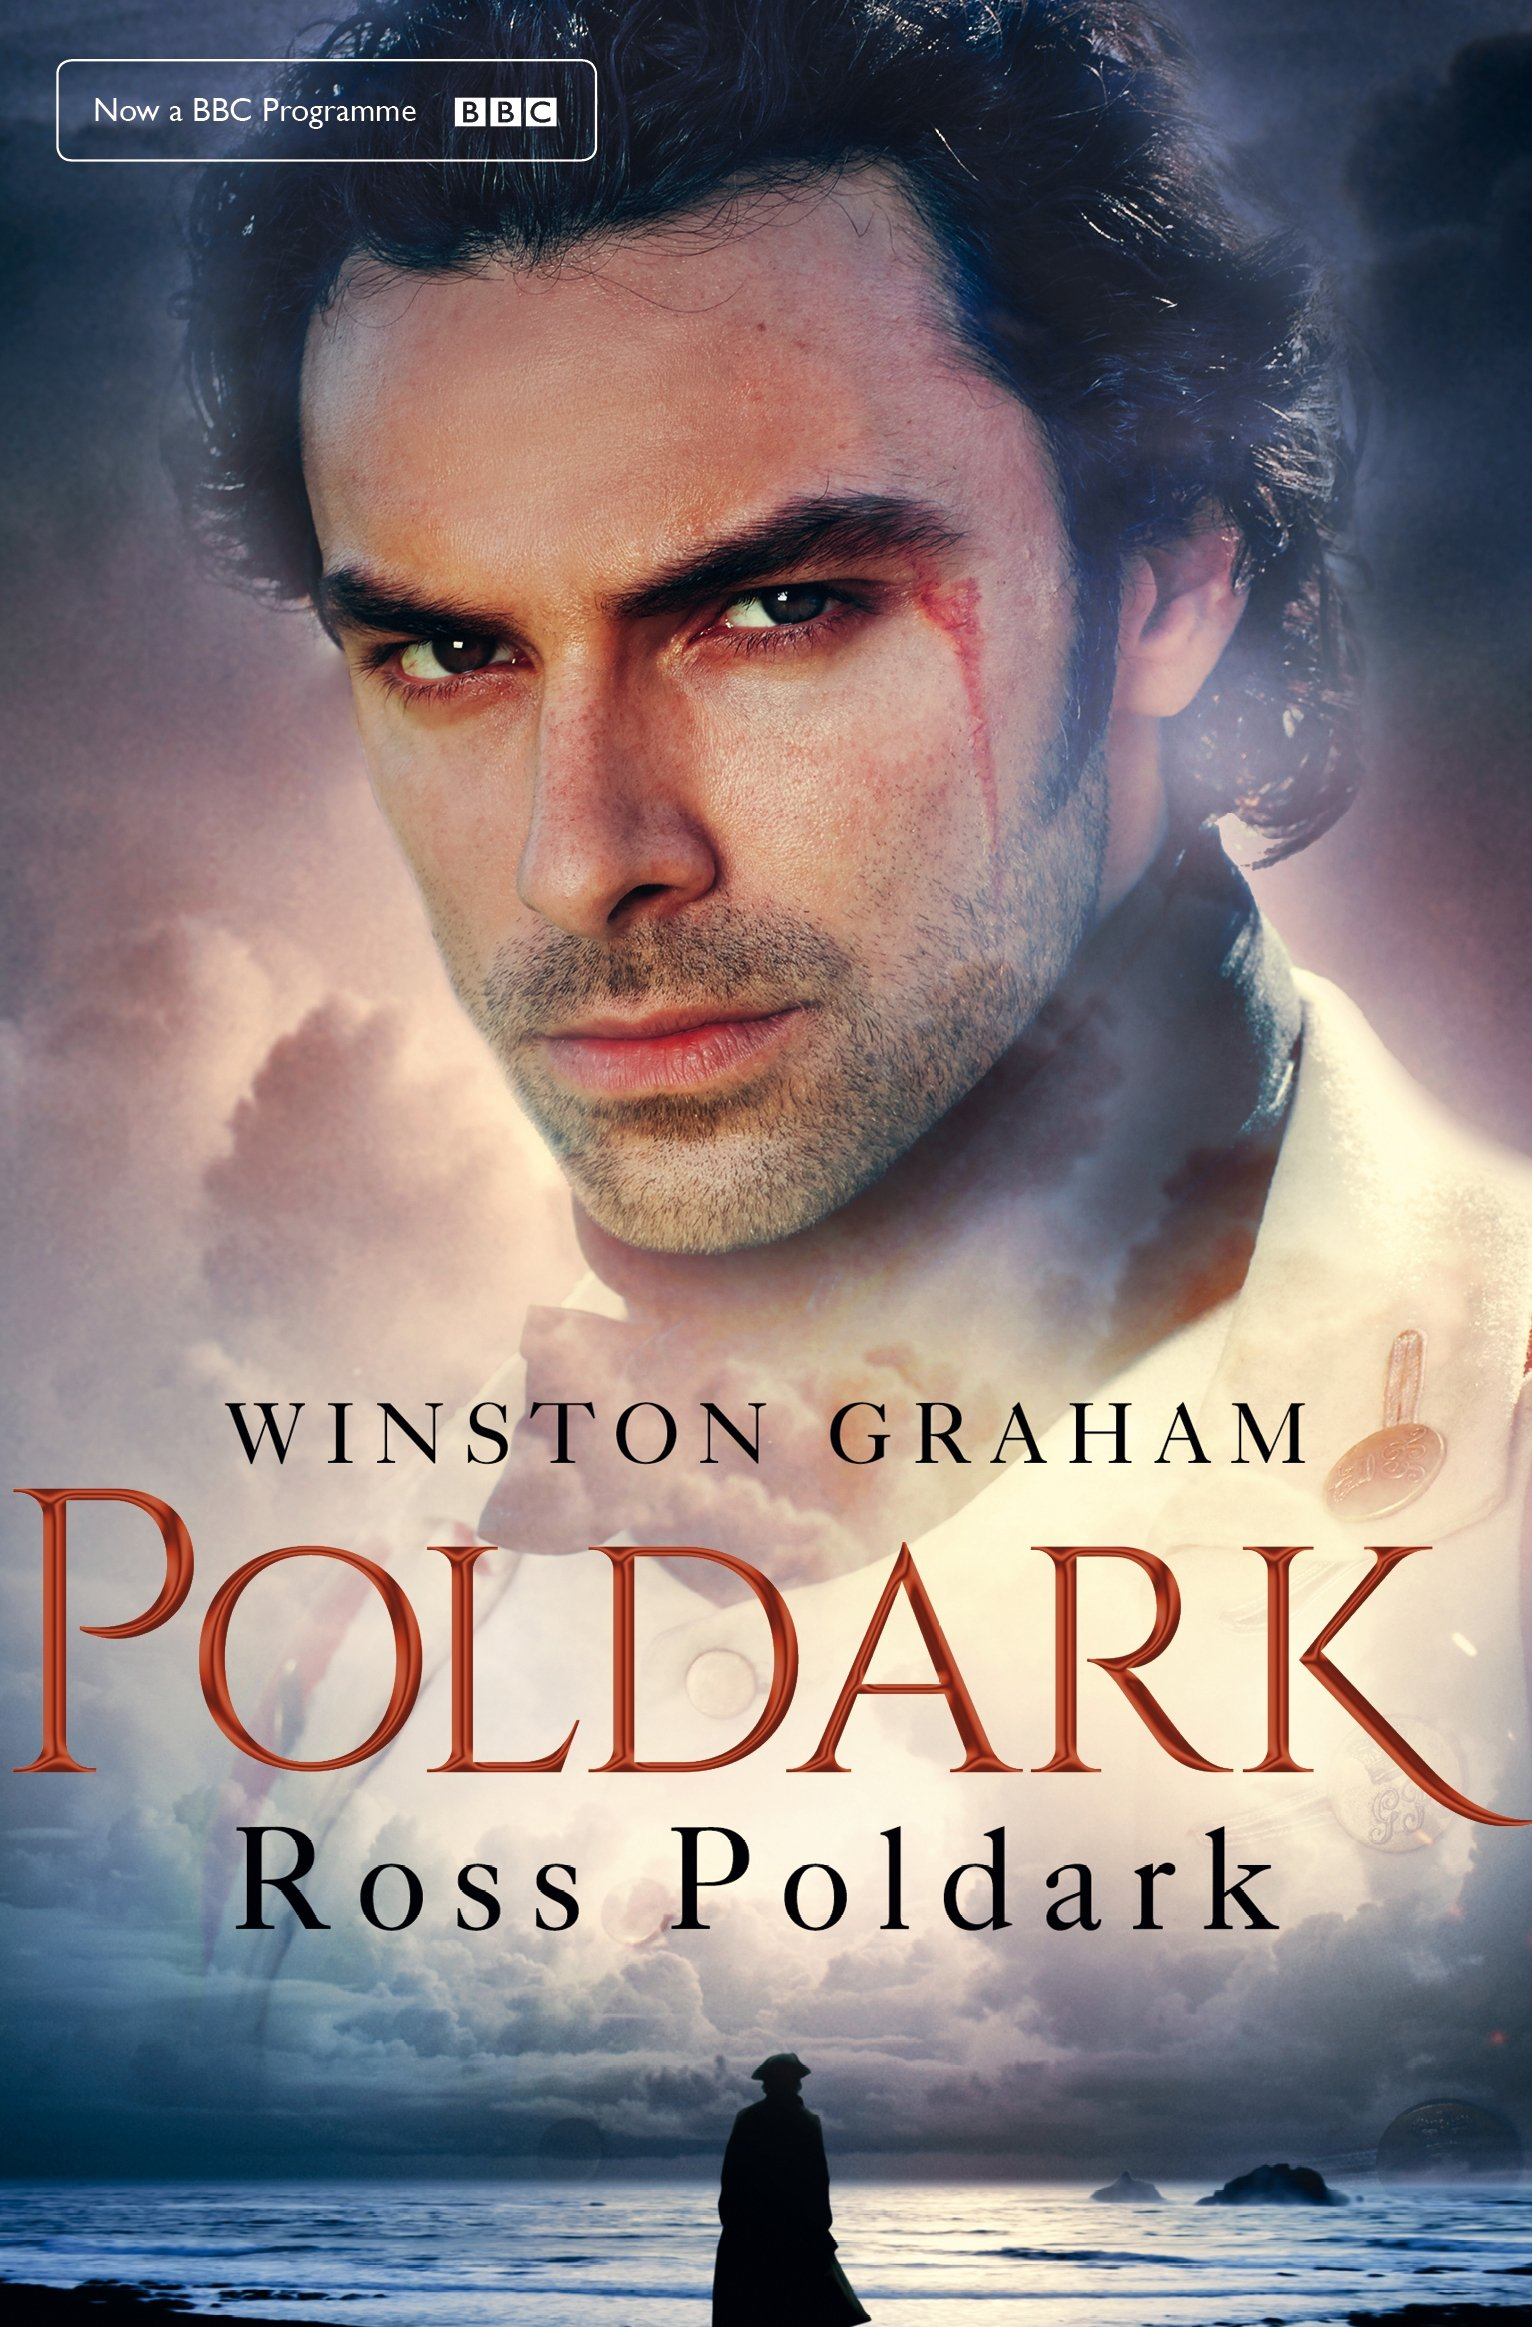 Ross-Poldark-book-jacket